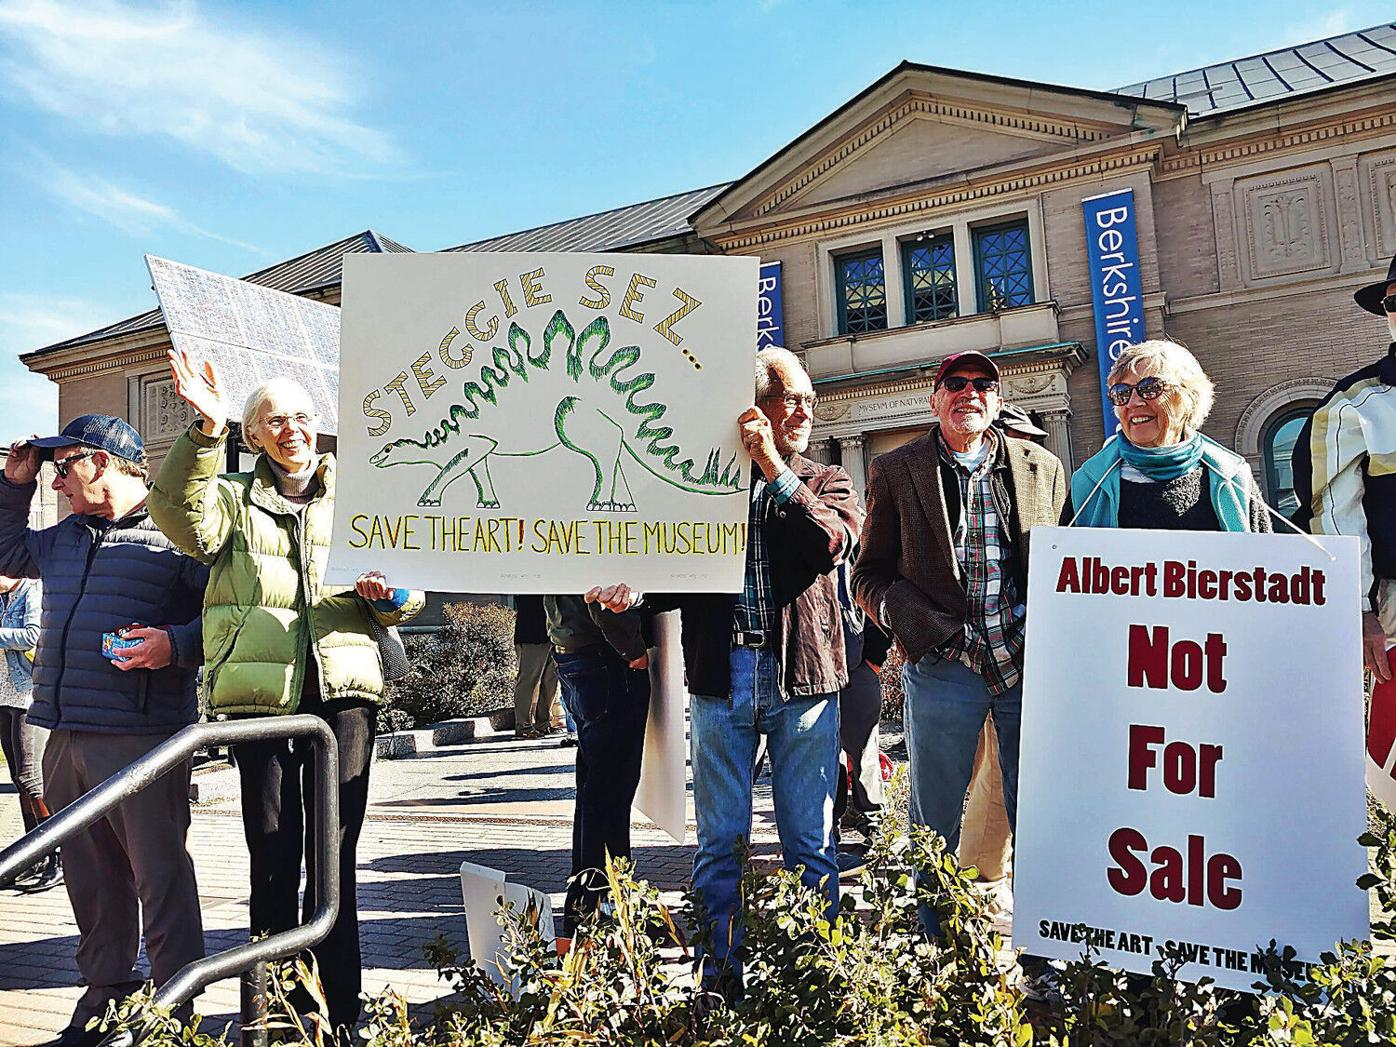 At protest, some in community stand behind Berkshire Museum's planned art sale